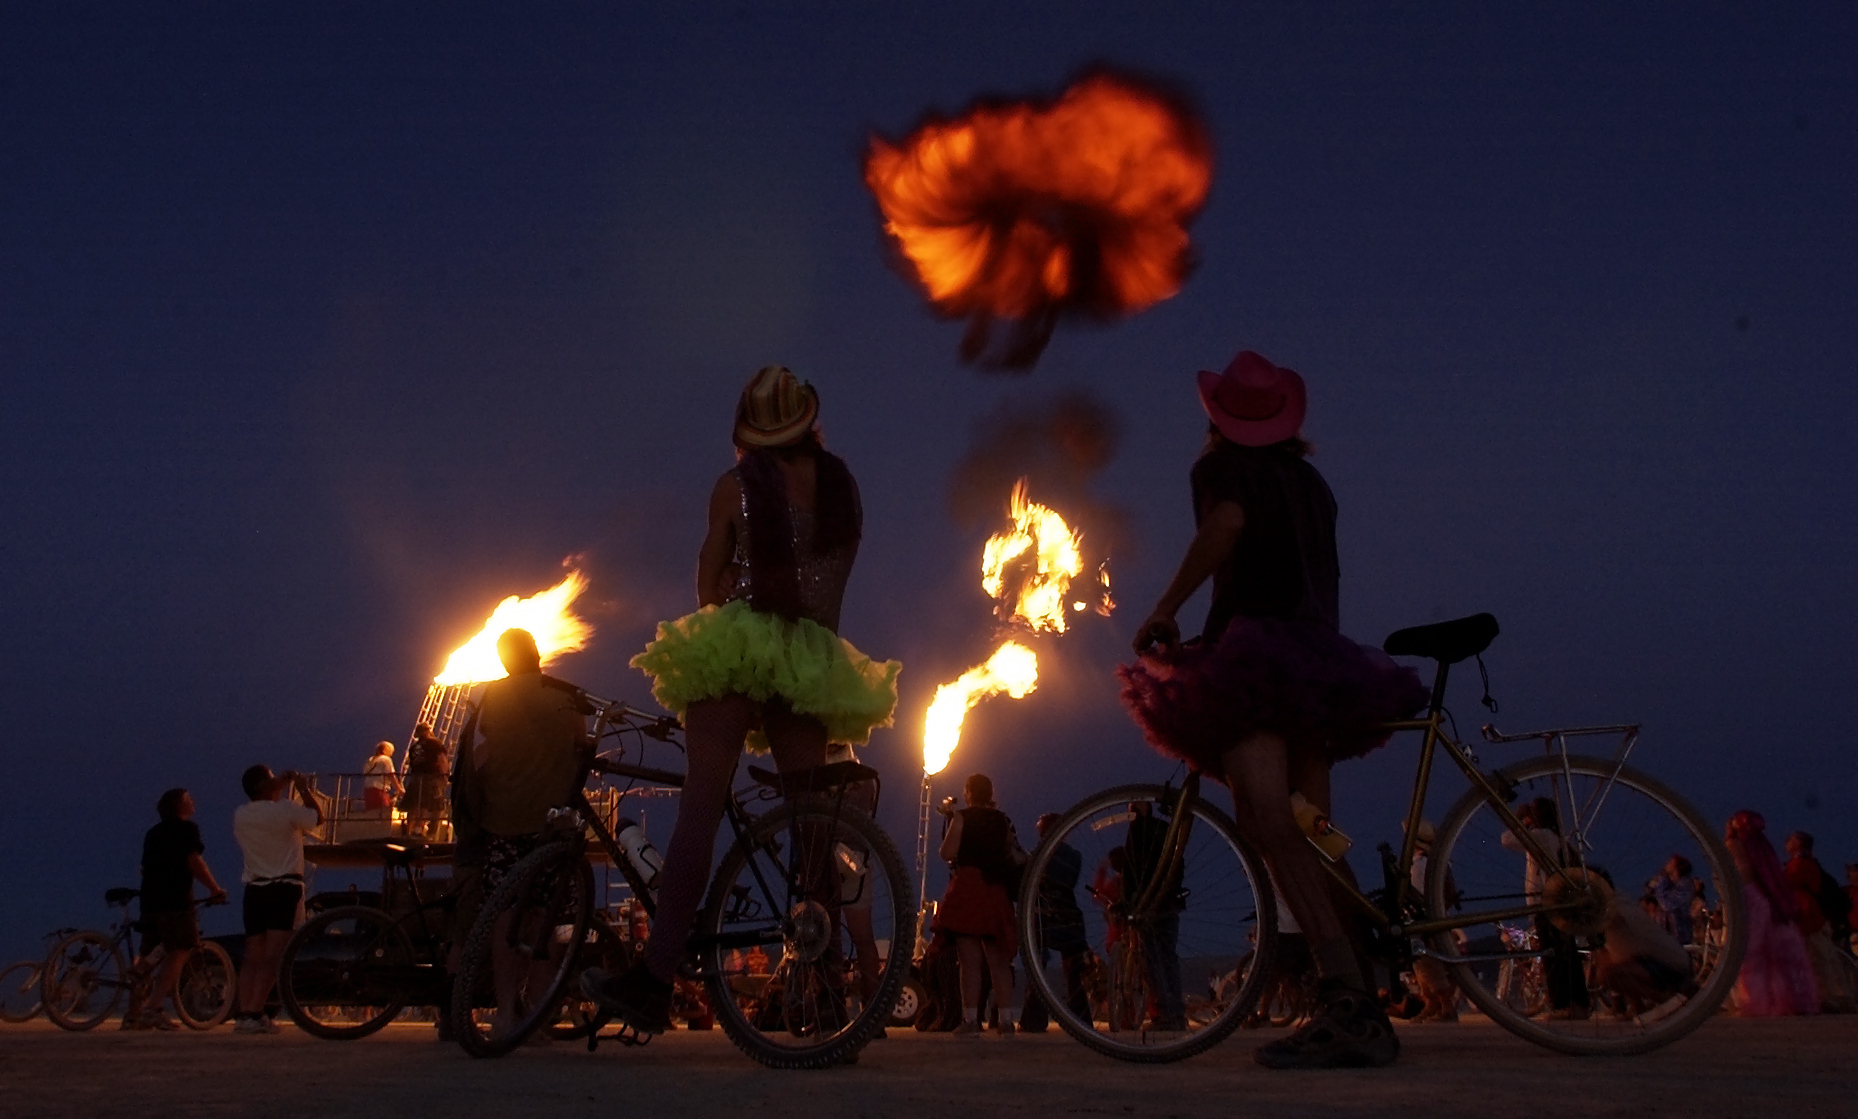 BURNING MAN -- 08/29/05 -- BLACK ROCK DESERT, NV -- A giant, and loud, fireball erupts from a canon